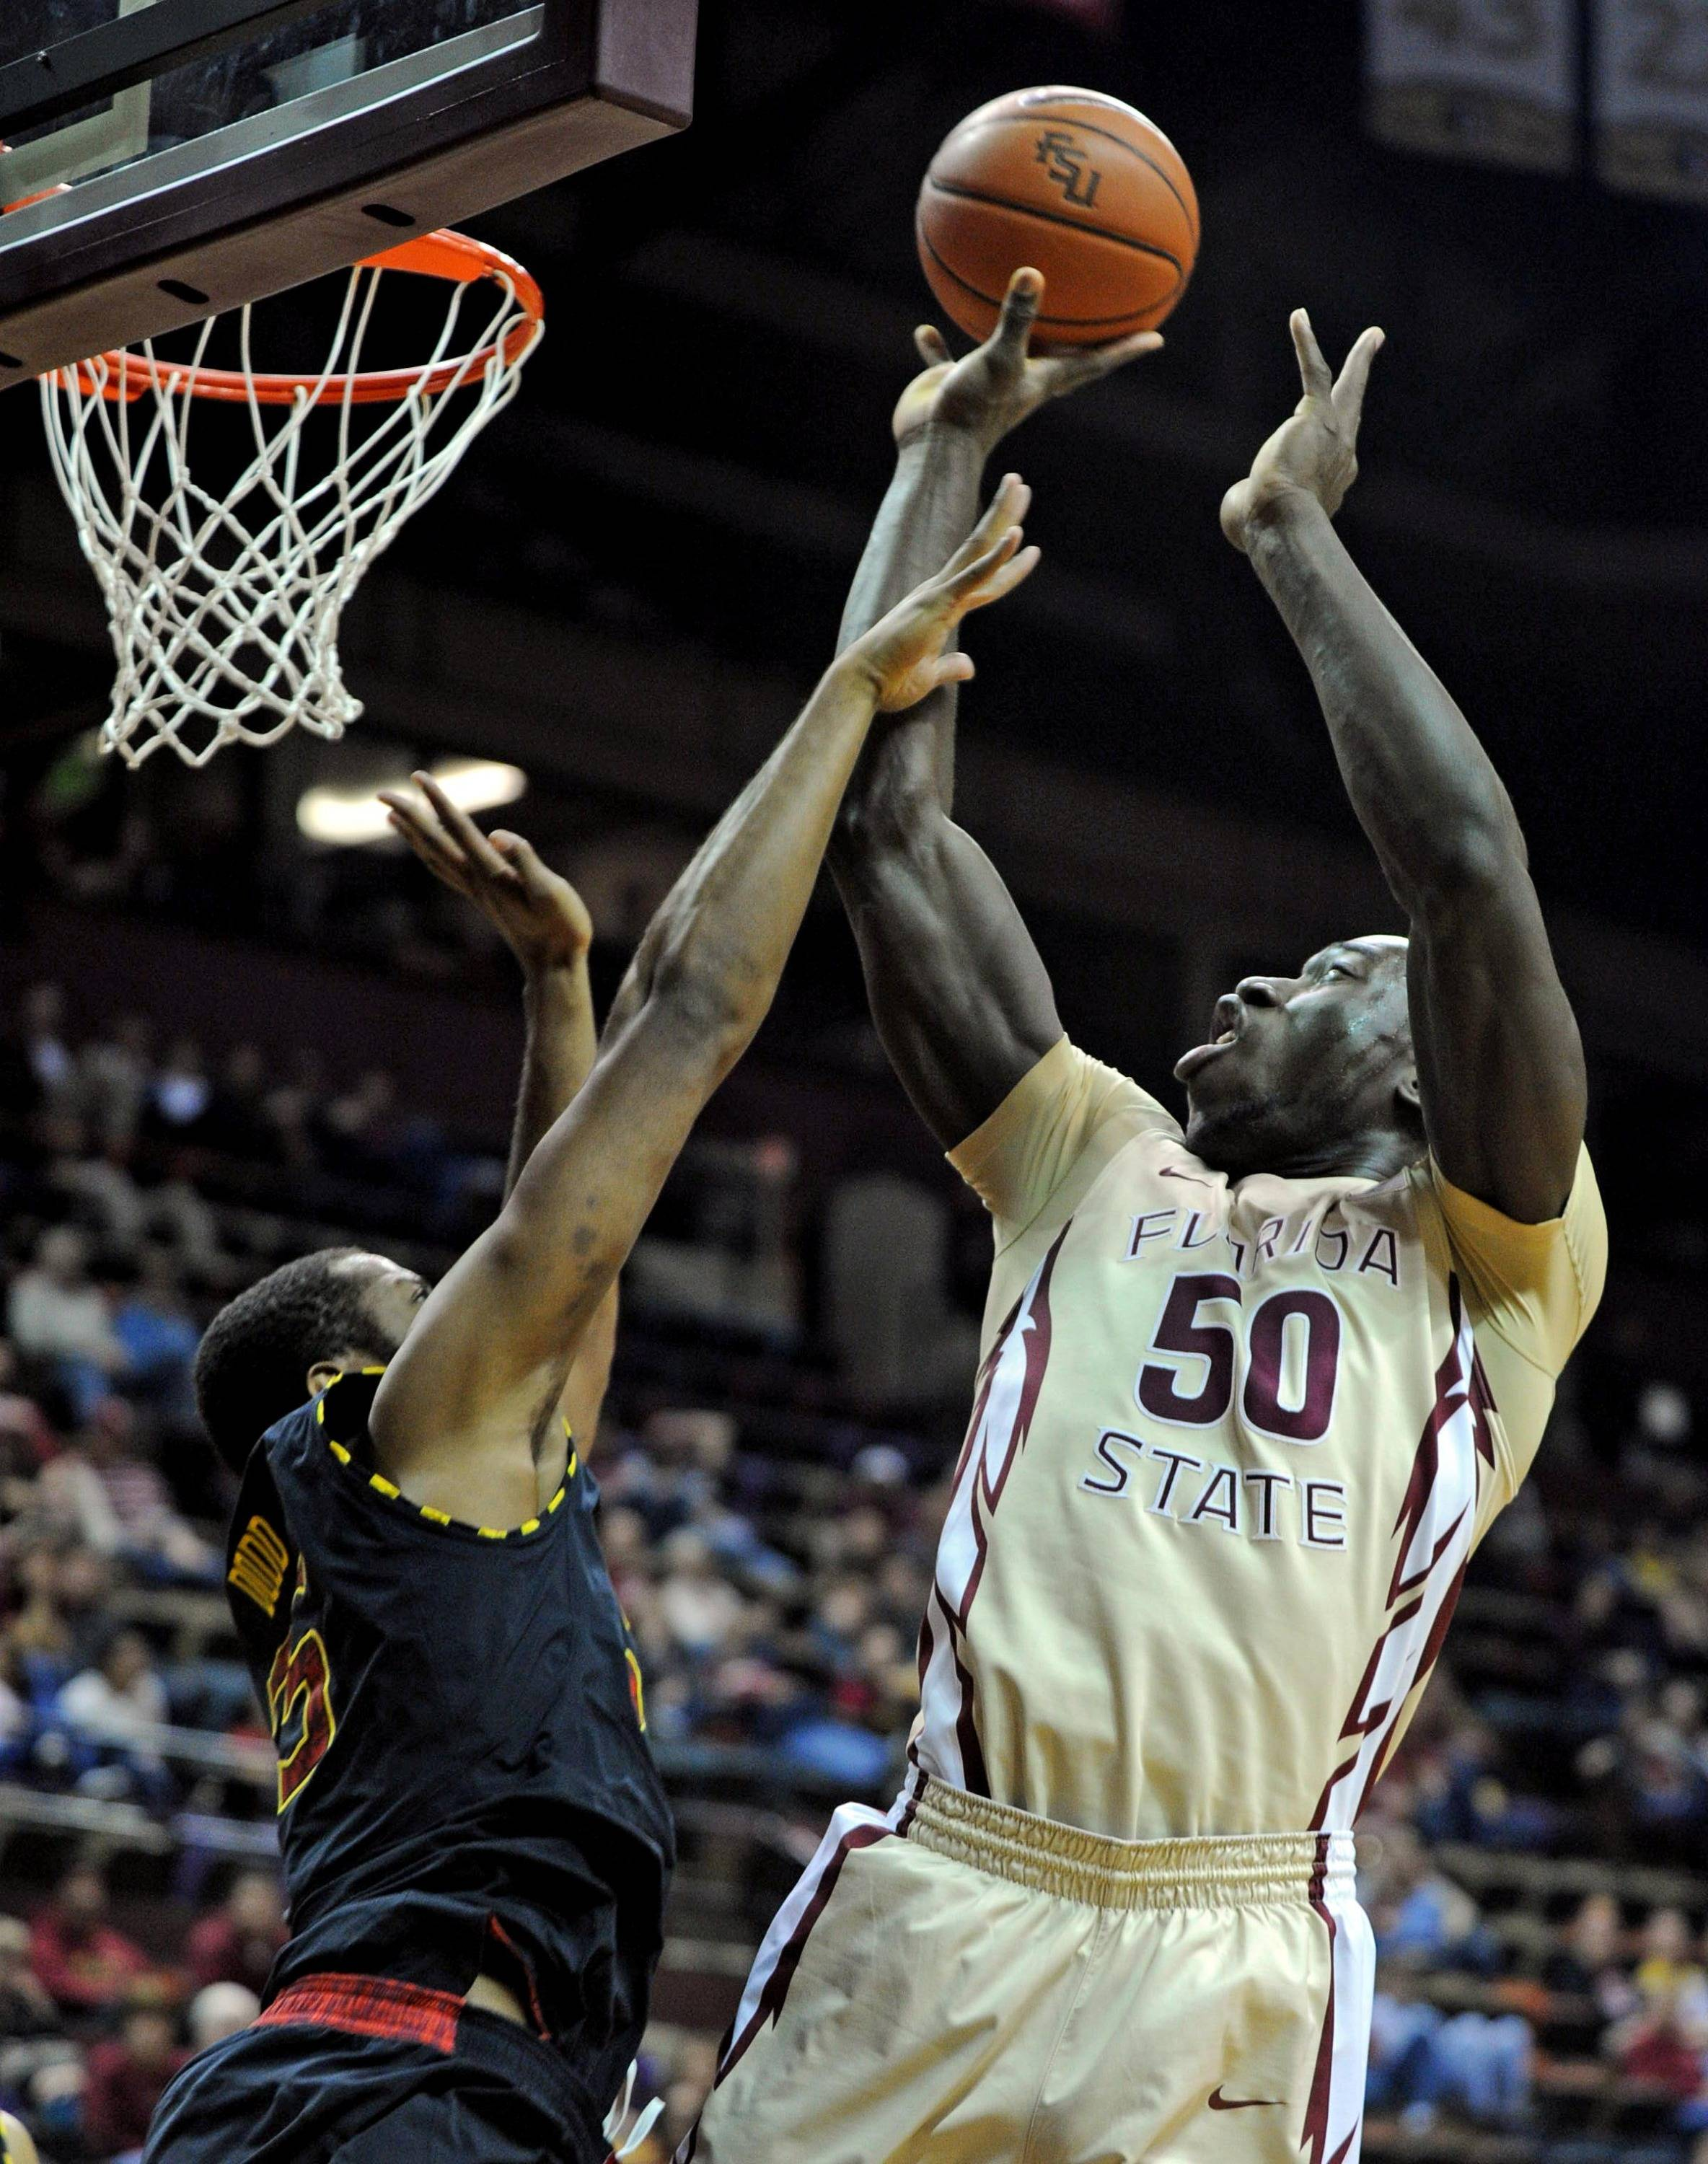 Jan 12, 2014; Tallahassee, FL, USA; Florida State Seminoles center Michael Ojo (50) looks to shoot as he is defended by Maryland Terrapins forward Damonte Dodd (35) during the second half at Donald L. Tucker Center. Mandatory Credit: Melina Vastola-USA TODAY Sports